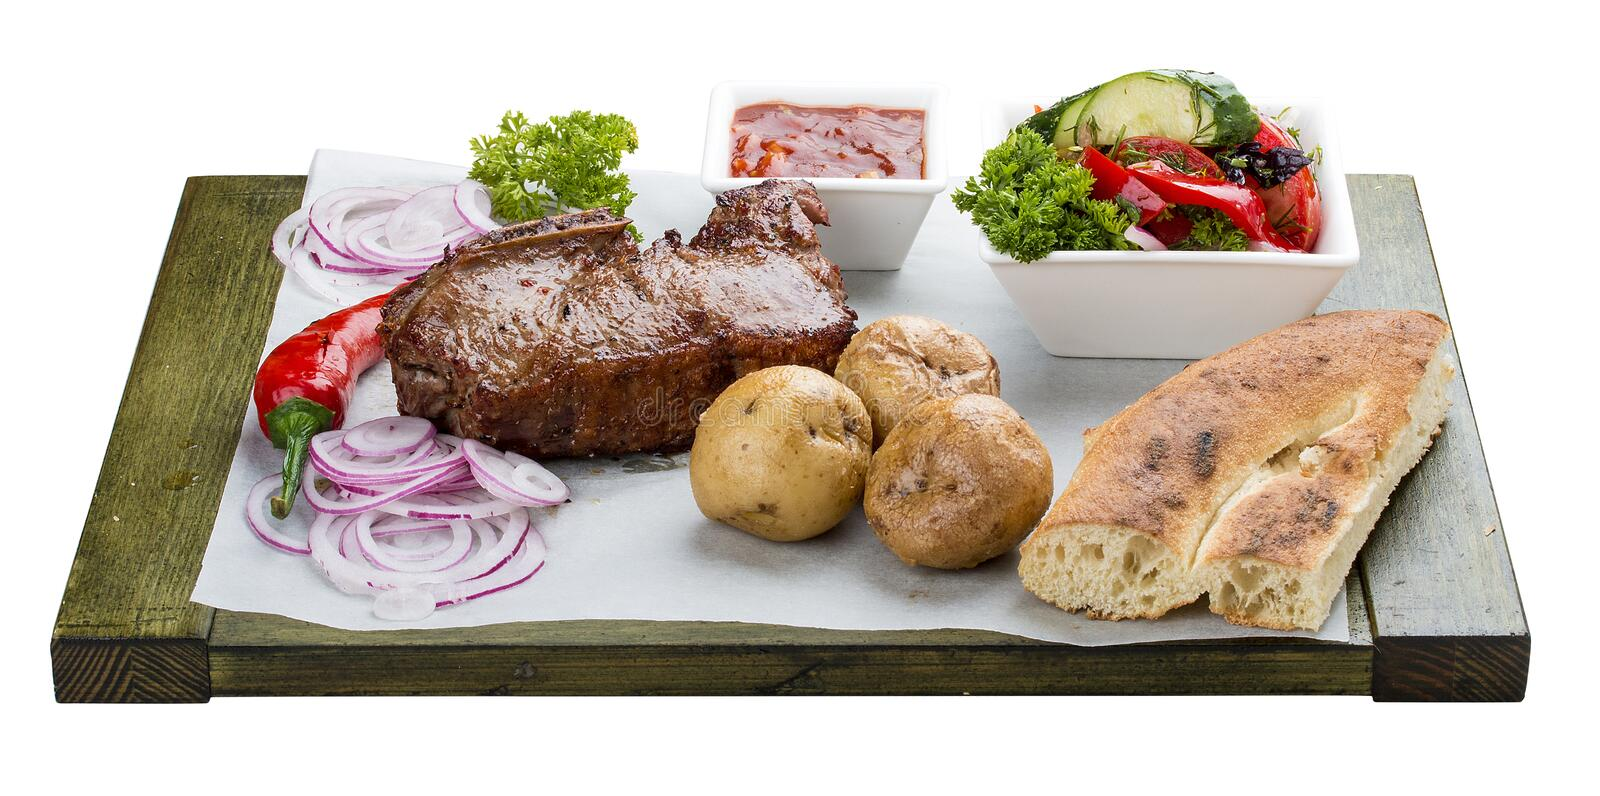 Veal steak with vegetable salad, potatoes and sauce. On a wooden board royalty free stock photo